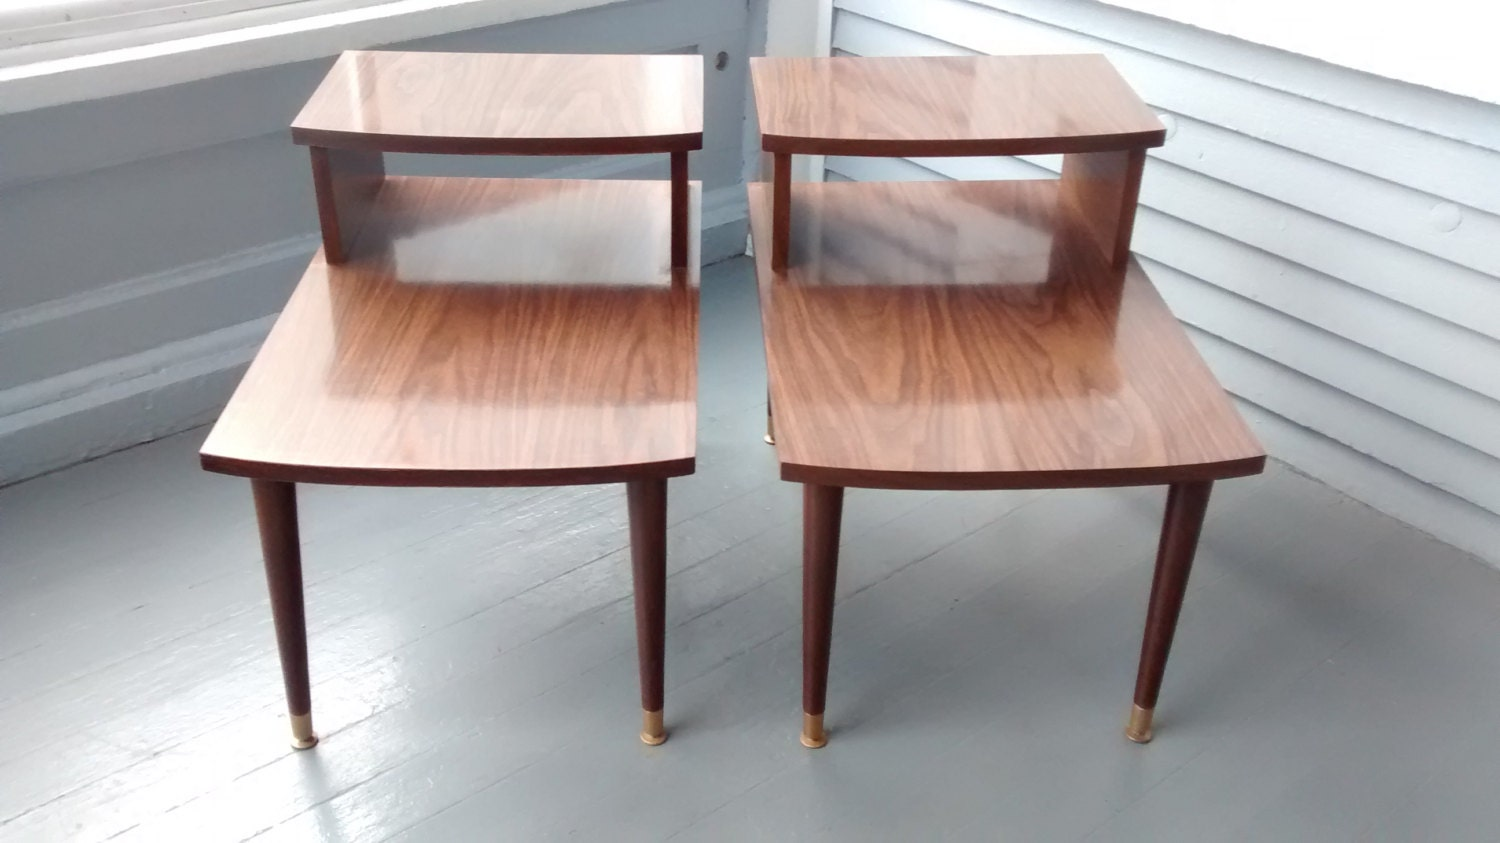 End Tables Step Up Mid Century Danish Modern Vintage